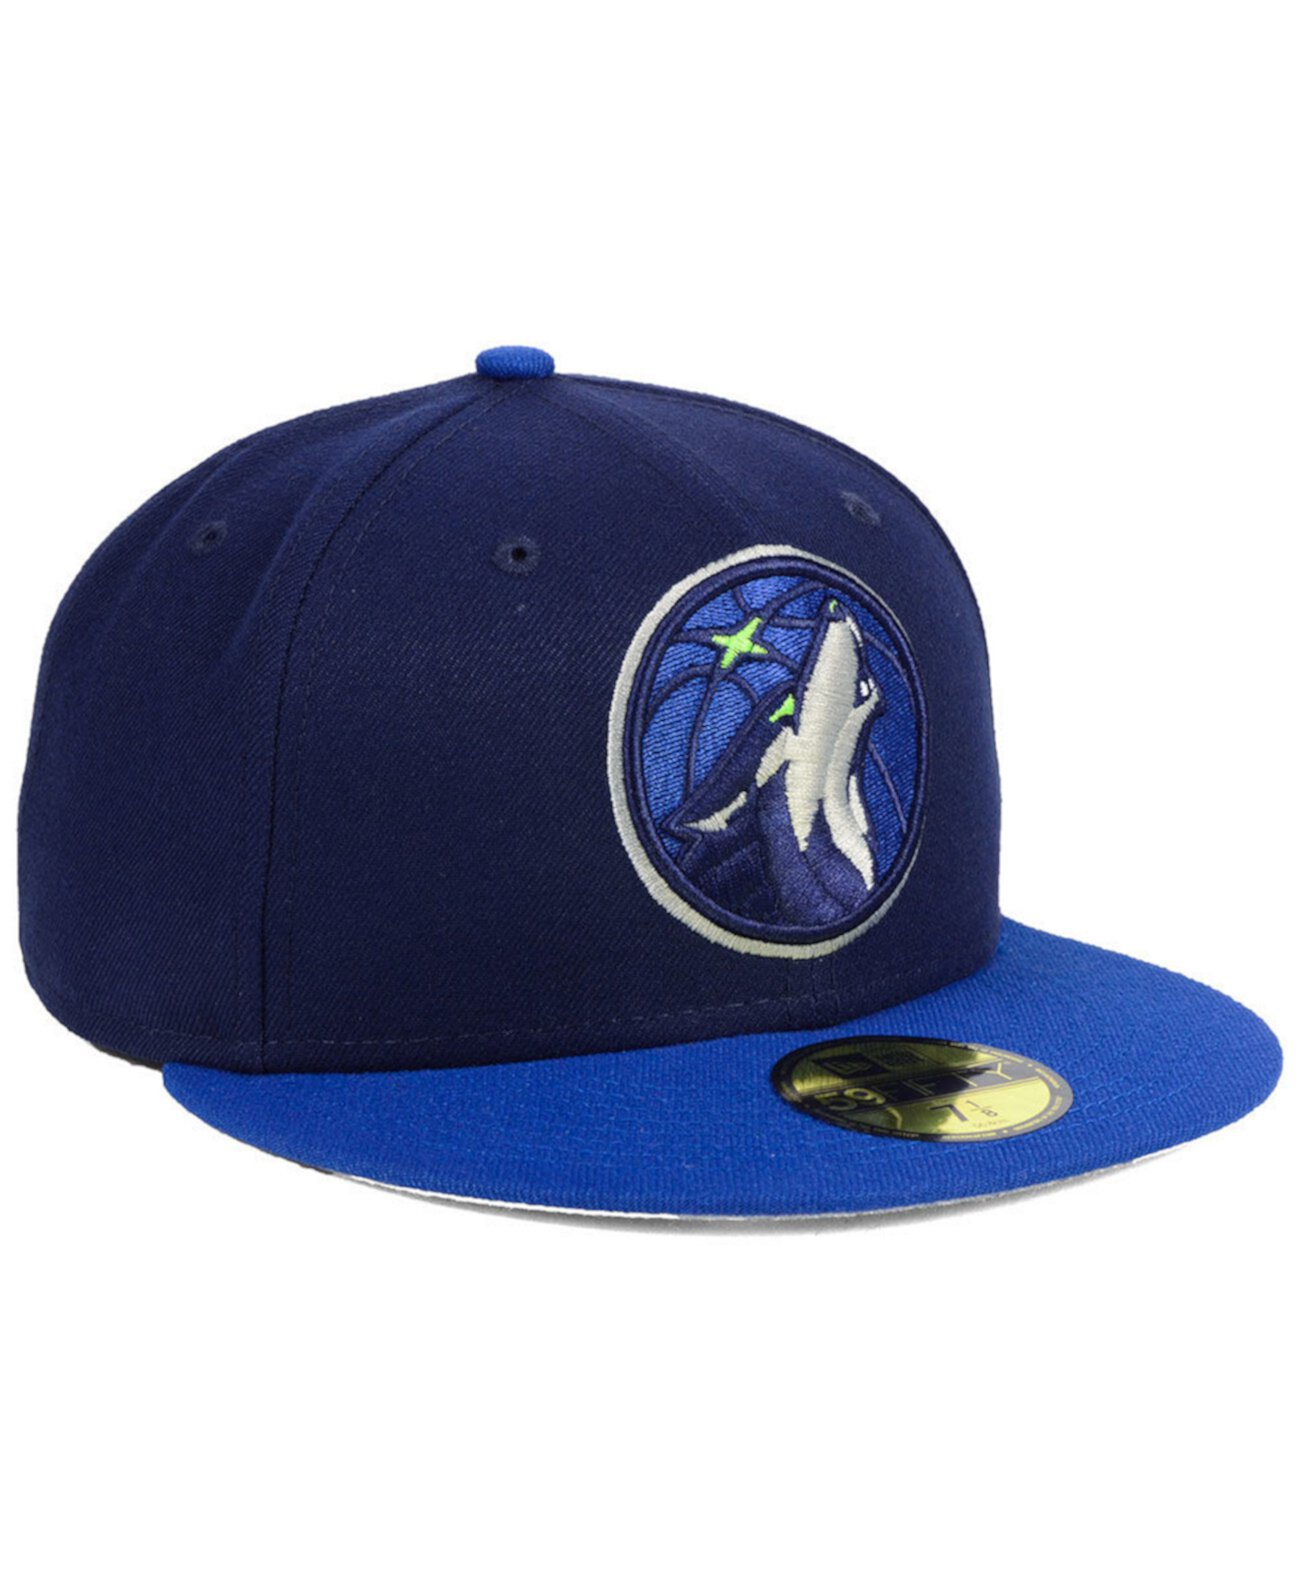 Minnesota Timberwolves Basic 2 Tone 59FIFTY Установленная кепка New Era